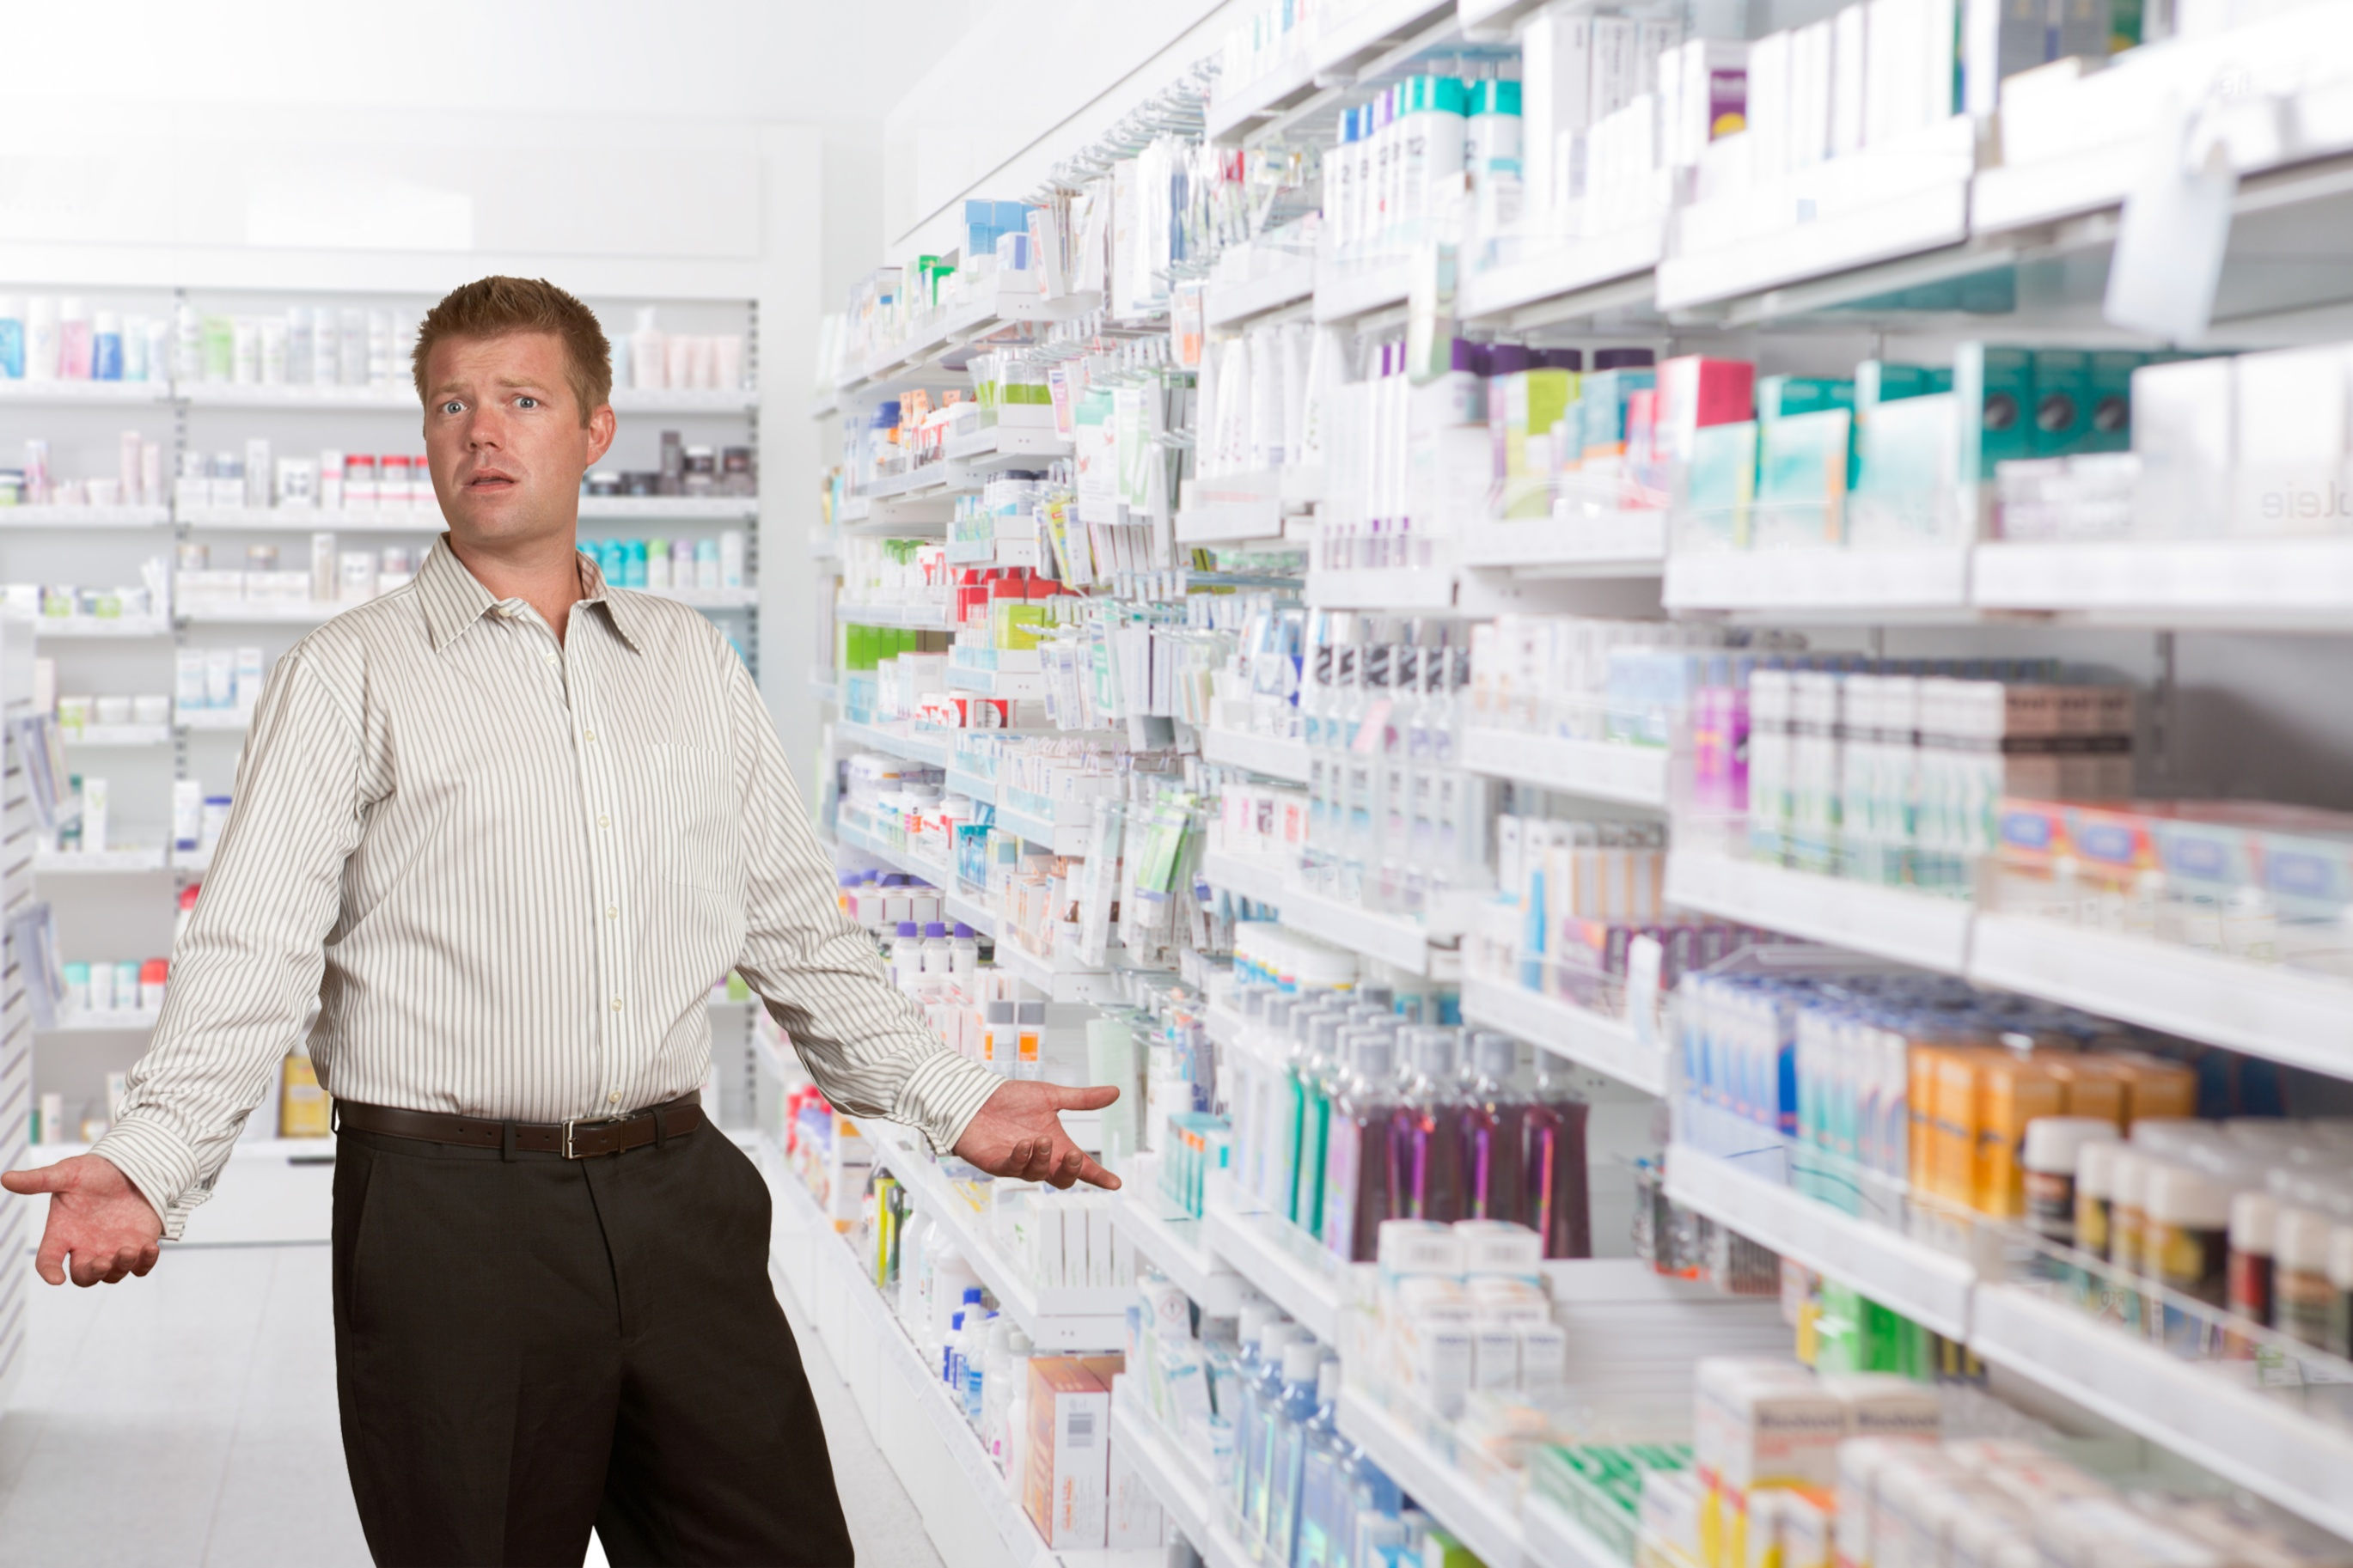 upset-customer-in-pharmacy-aisle